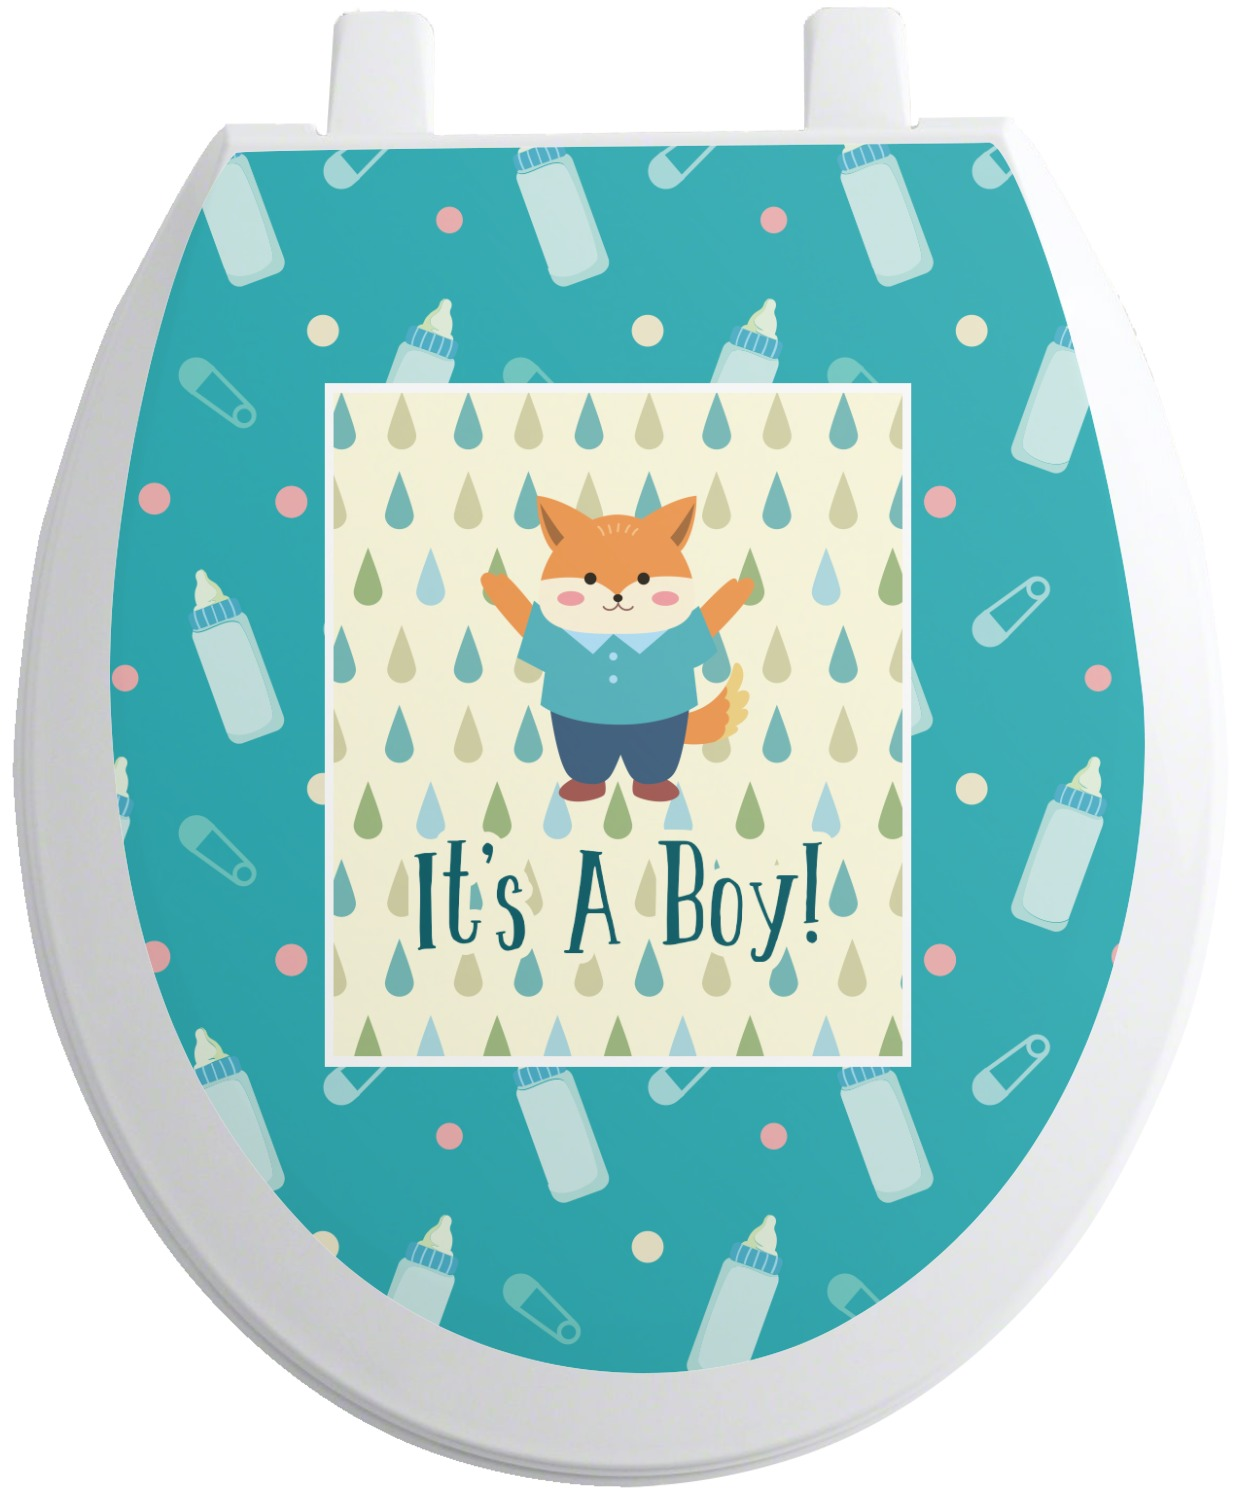 Baby Shower Seating: Baby Shower Toilet Seat Decal